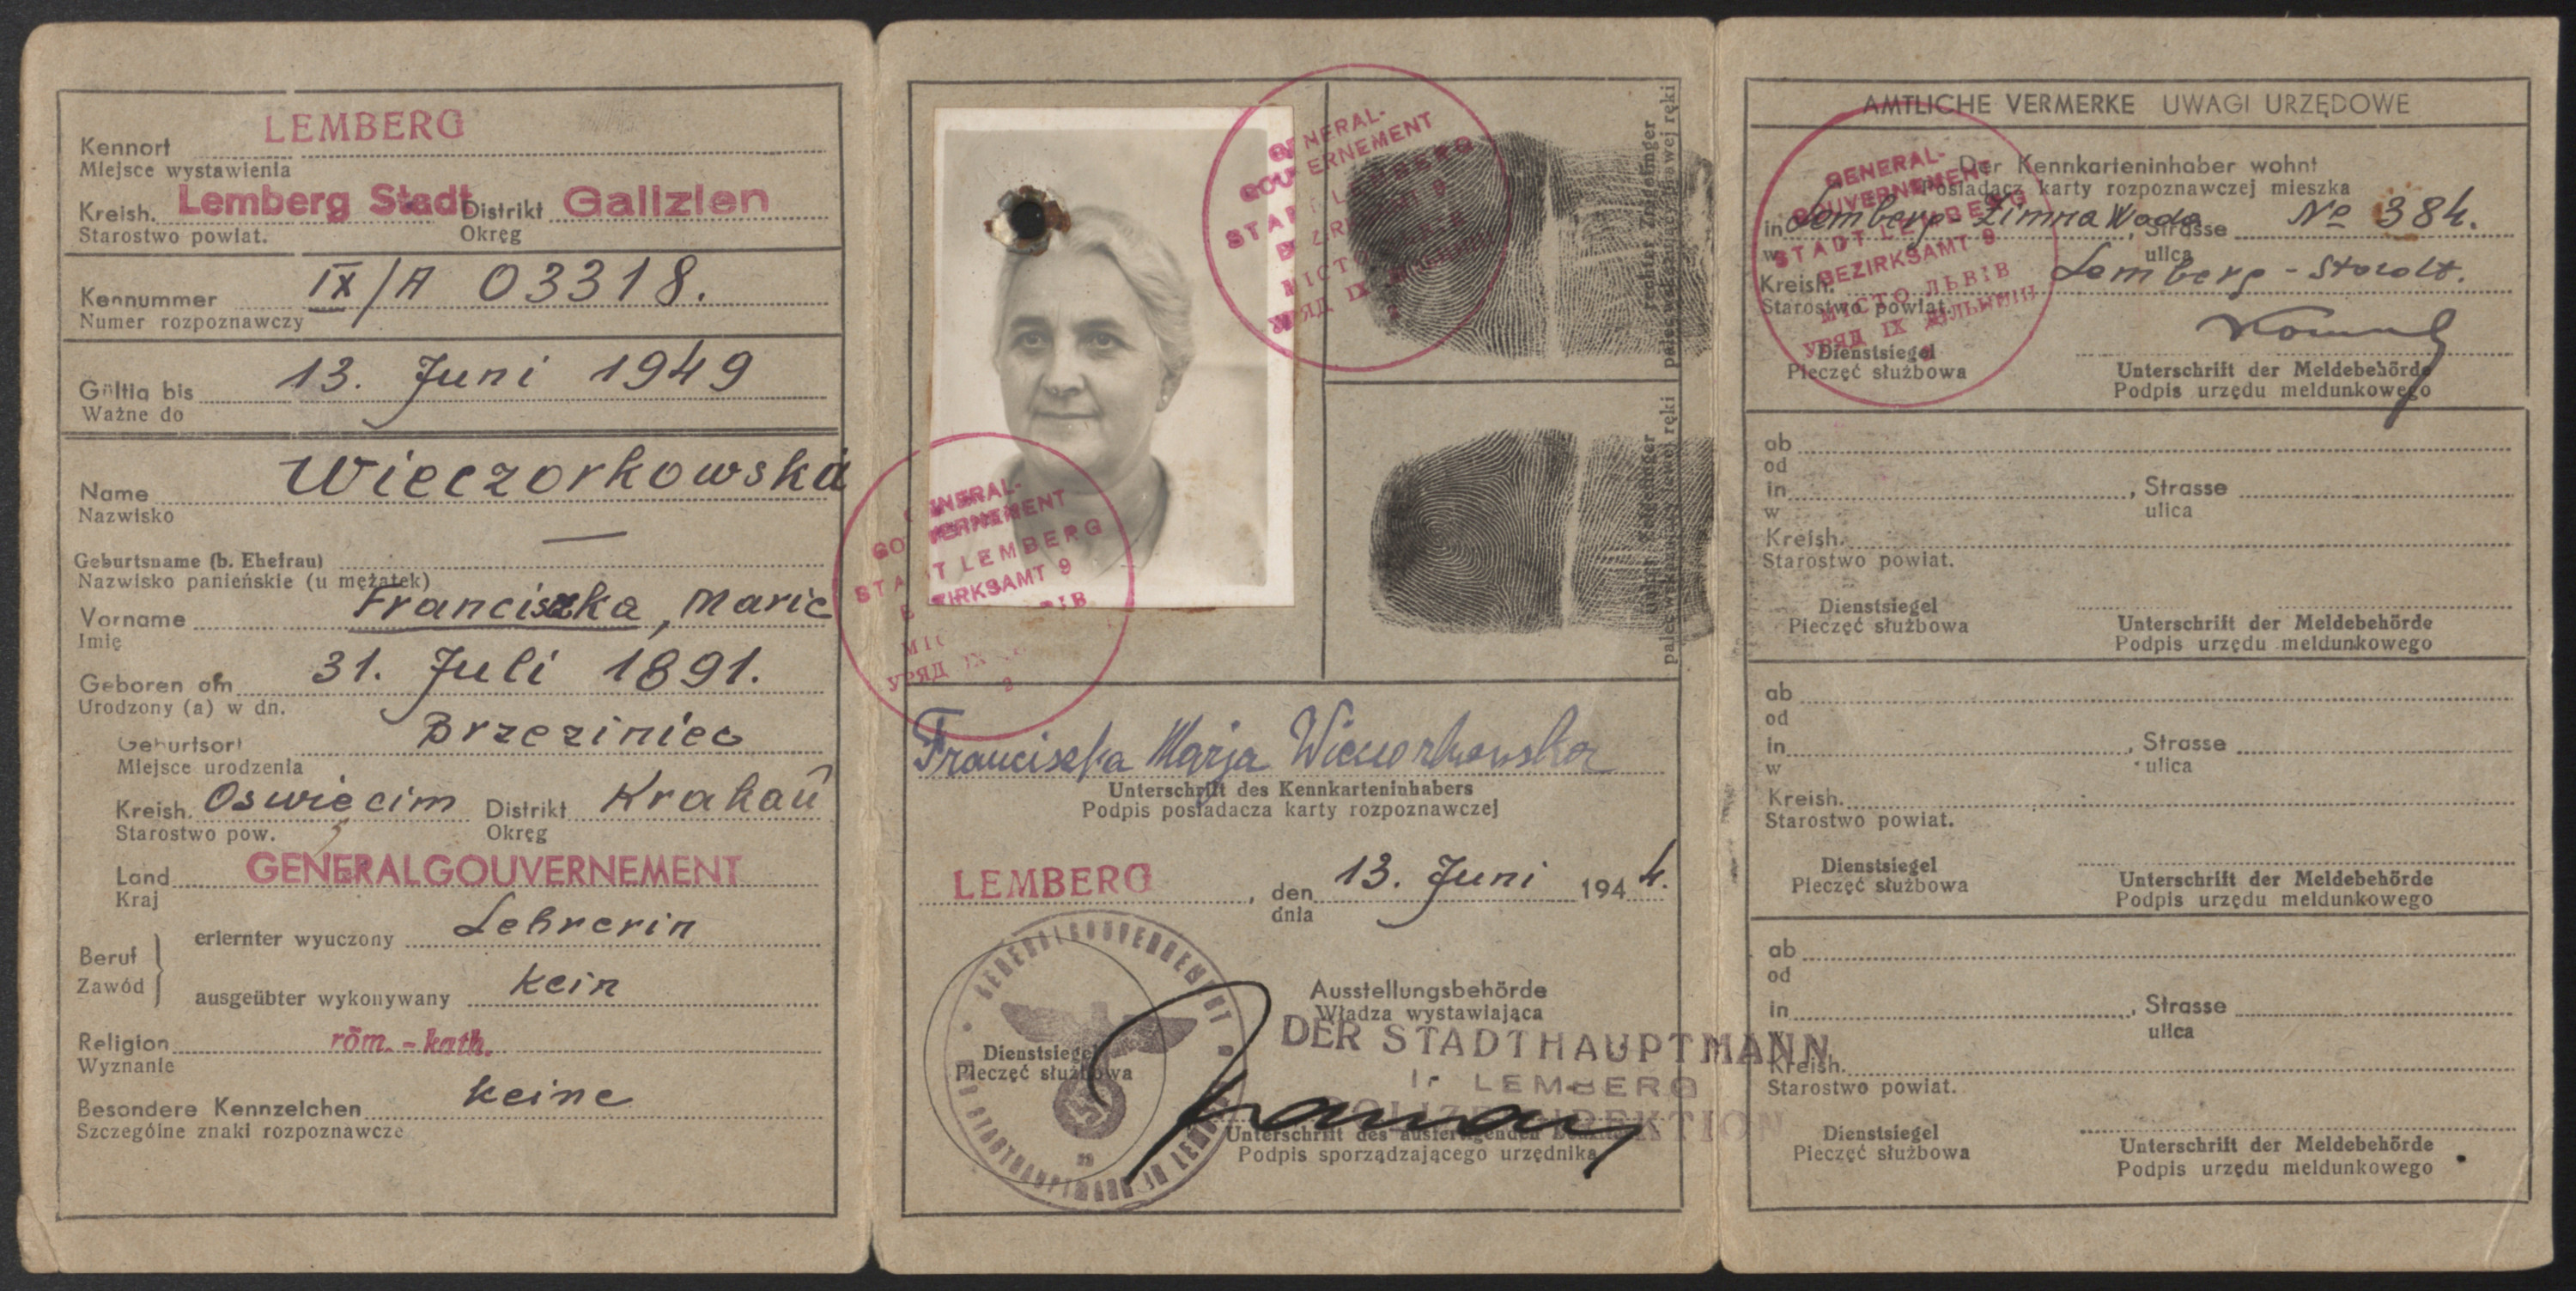 False identification card issued in the name of Franciszka Maria Wieczorkowska, that was used by Fanny Tennenbaum, a Jewish woman who was living in hiding in the vicinity of Lvov during World War II.